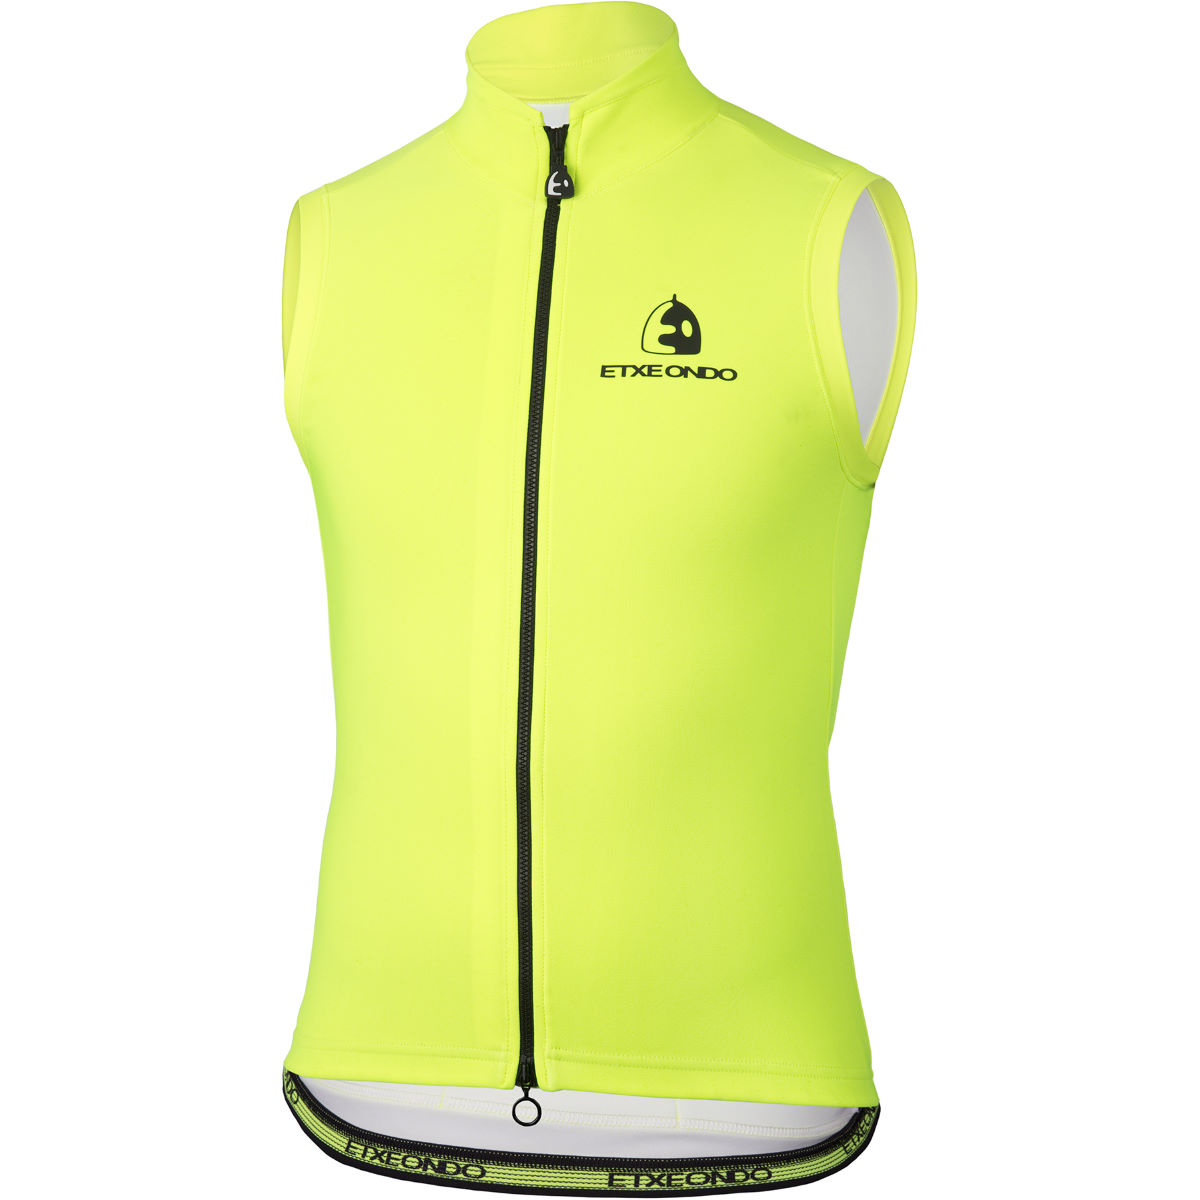 Gilet sans manches Etxeondo Team Edition Windstopper - XL Jaune Gilets vélo